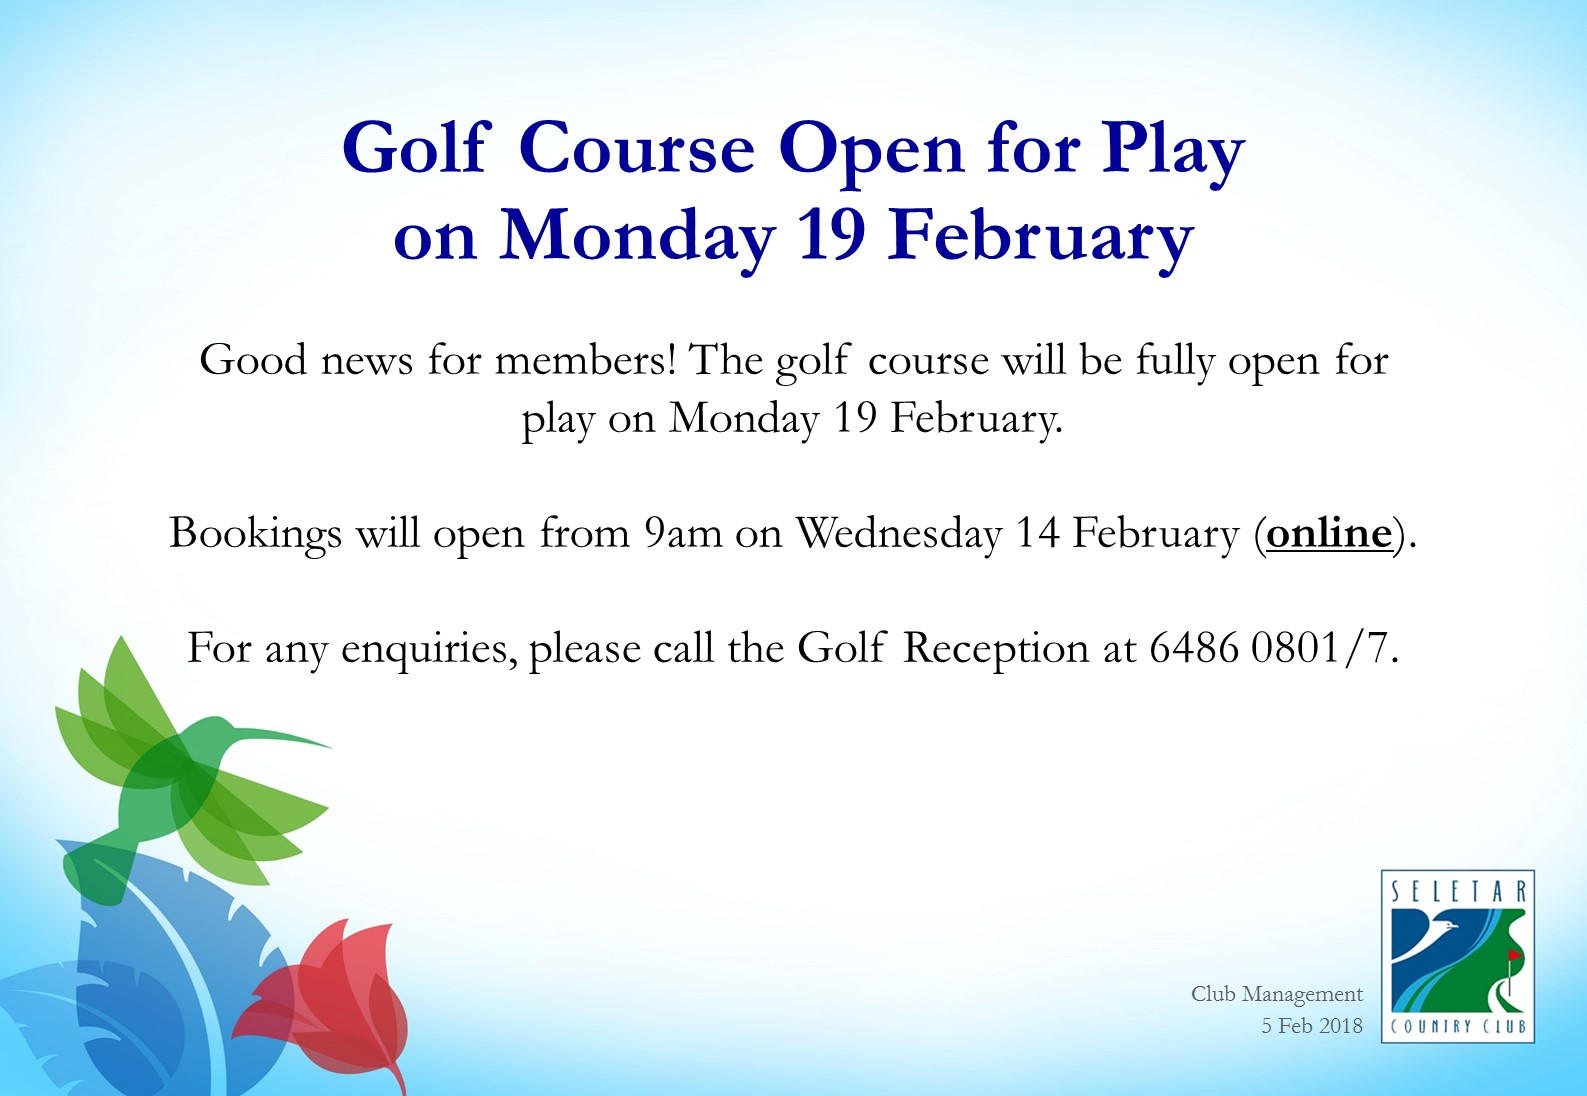 Golf Course Open for Play on Mon 19 Feb